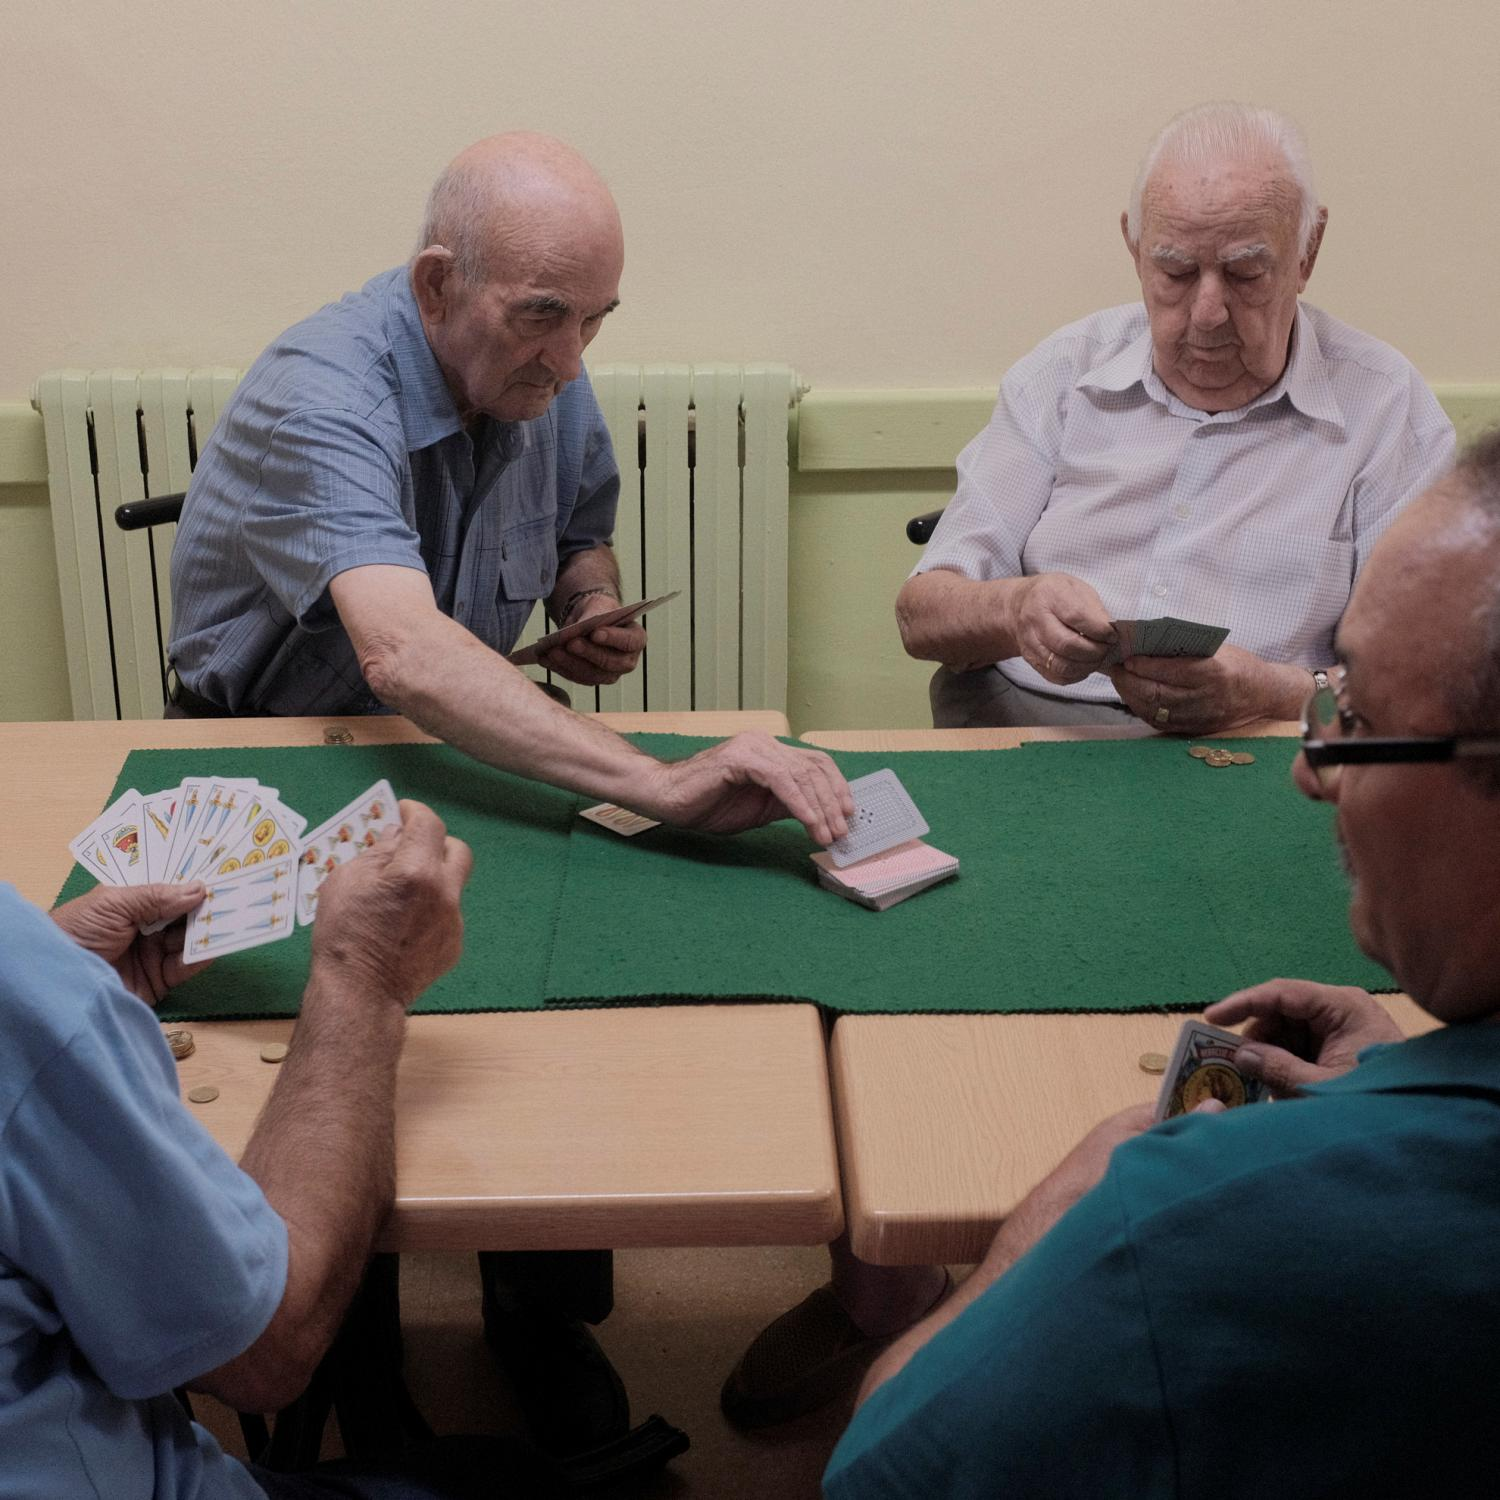 Retired farmers of Sodeto (Huesca), a settleds spot of no more than 200 inhabitants, playing a typical card game called Rabino in the only bar in town. After the Spanish civil war in 1936, under Francisco Franco´s dictatorship, an agriculture reform was enforced leading to the building of more than 300 new towns all around Spain. This towns were populated with people coming from other rural impoverished areas but most of them are in high risk of disappearing because the new generations are moving to cities and abandoning these areas. Copyright: Spanish photojournalist Andoni Lubaki.